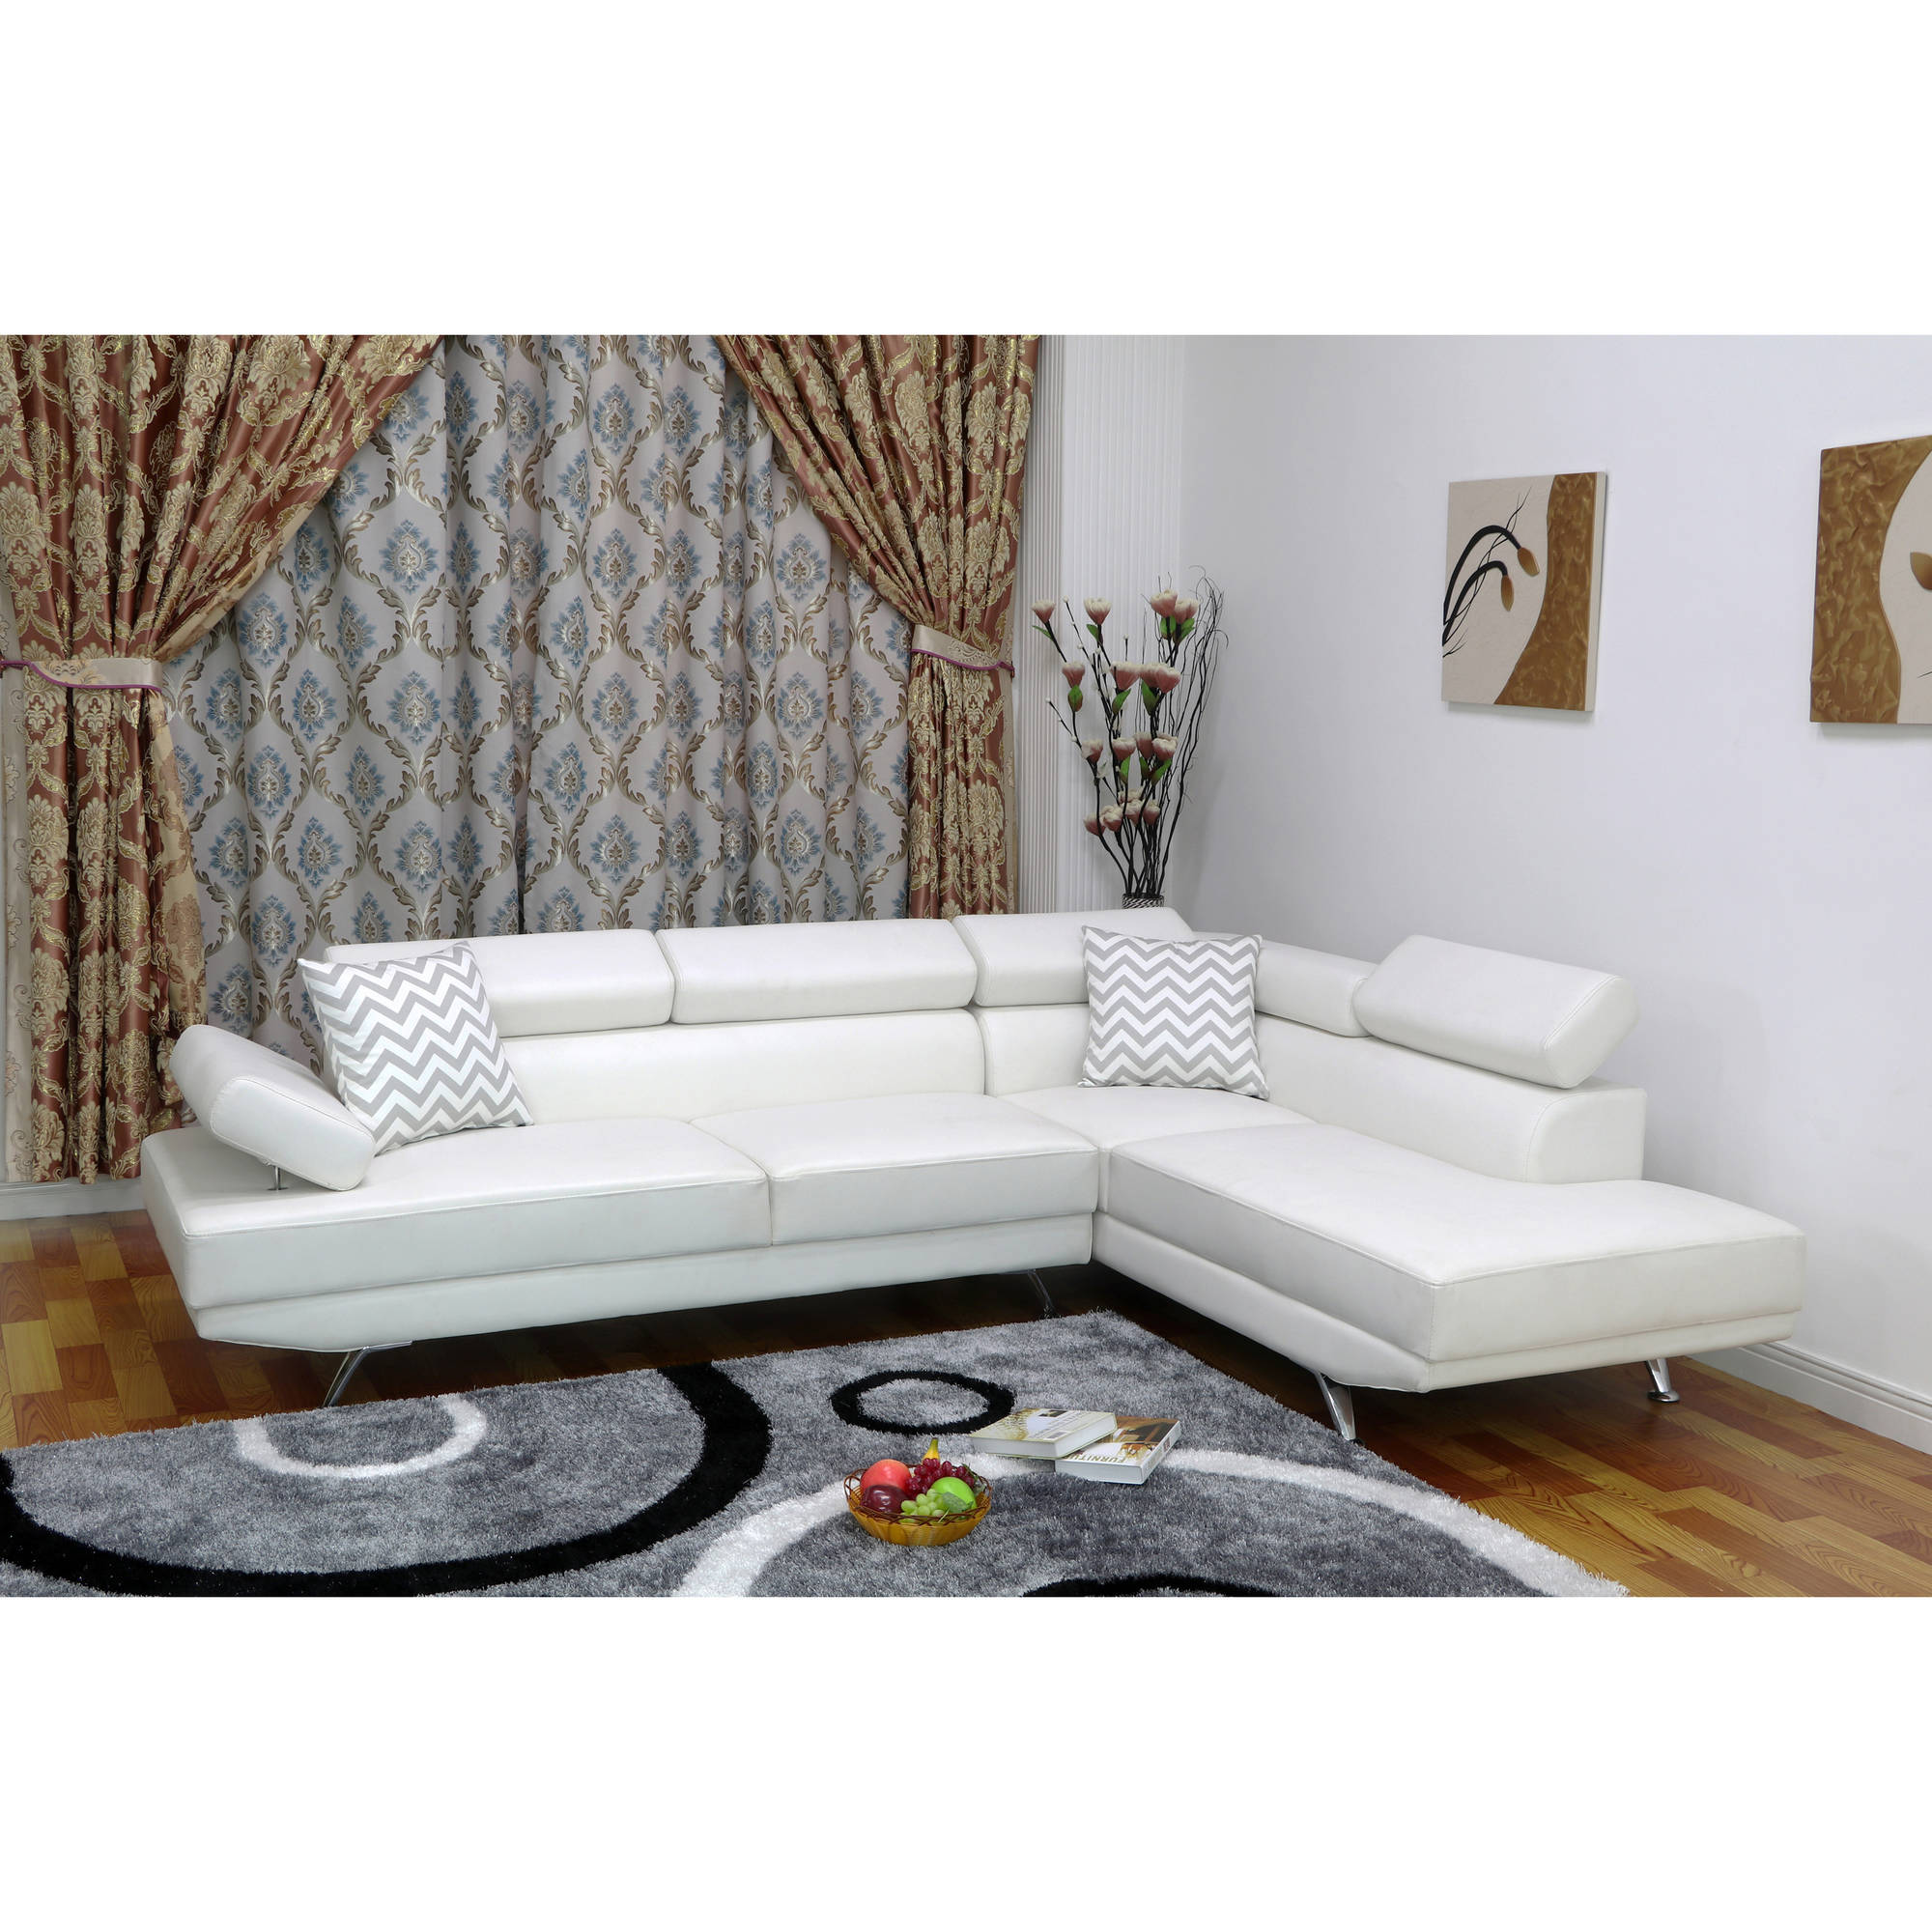 facing sectional sofa piece full right by cuddler value excellent with chaise leather mink pictures pieceonal left gray benchcraft inspirations karma of sofas kerridon size